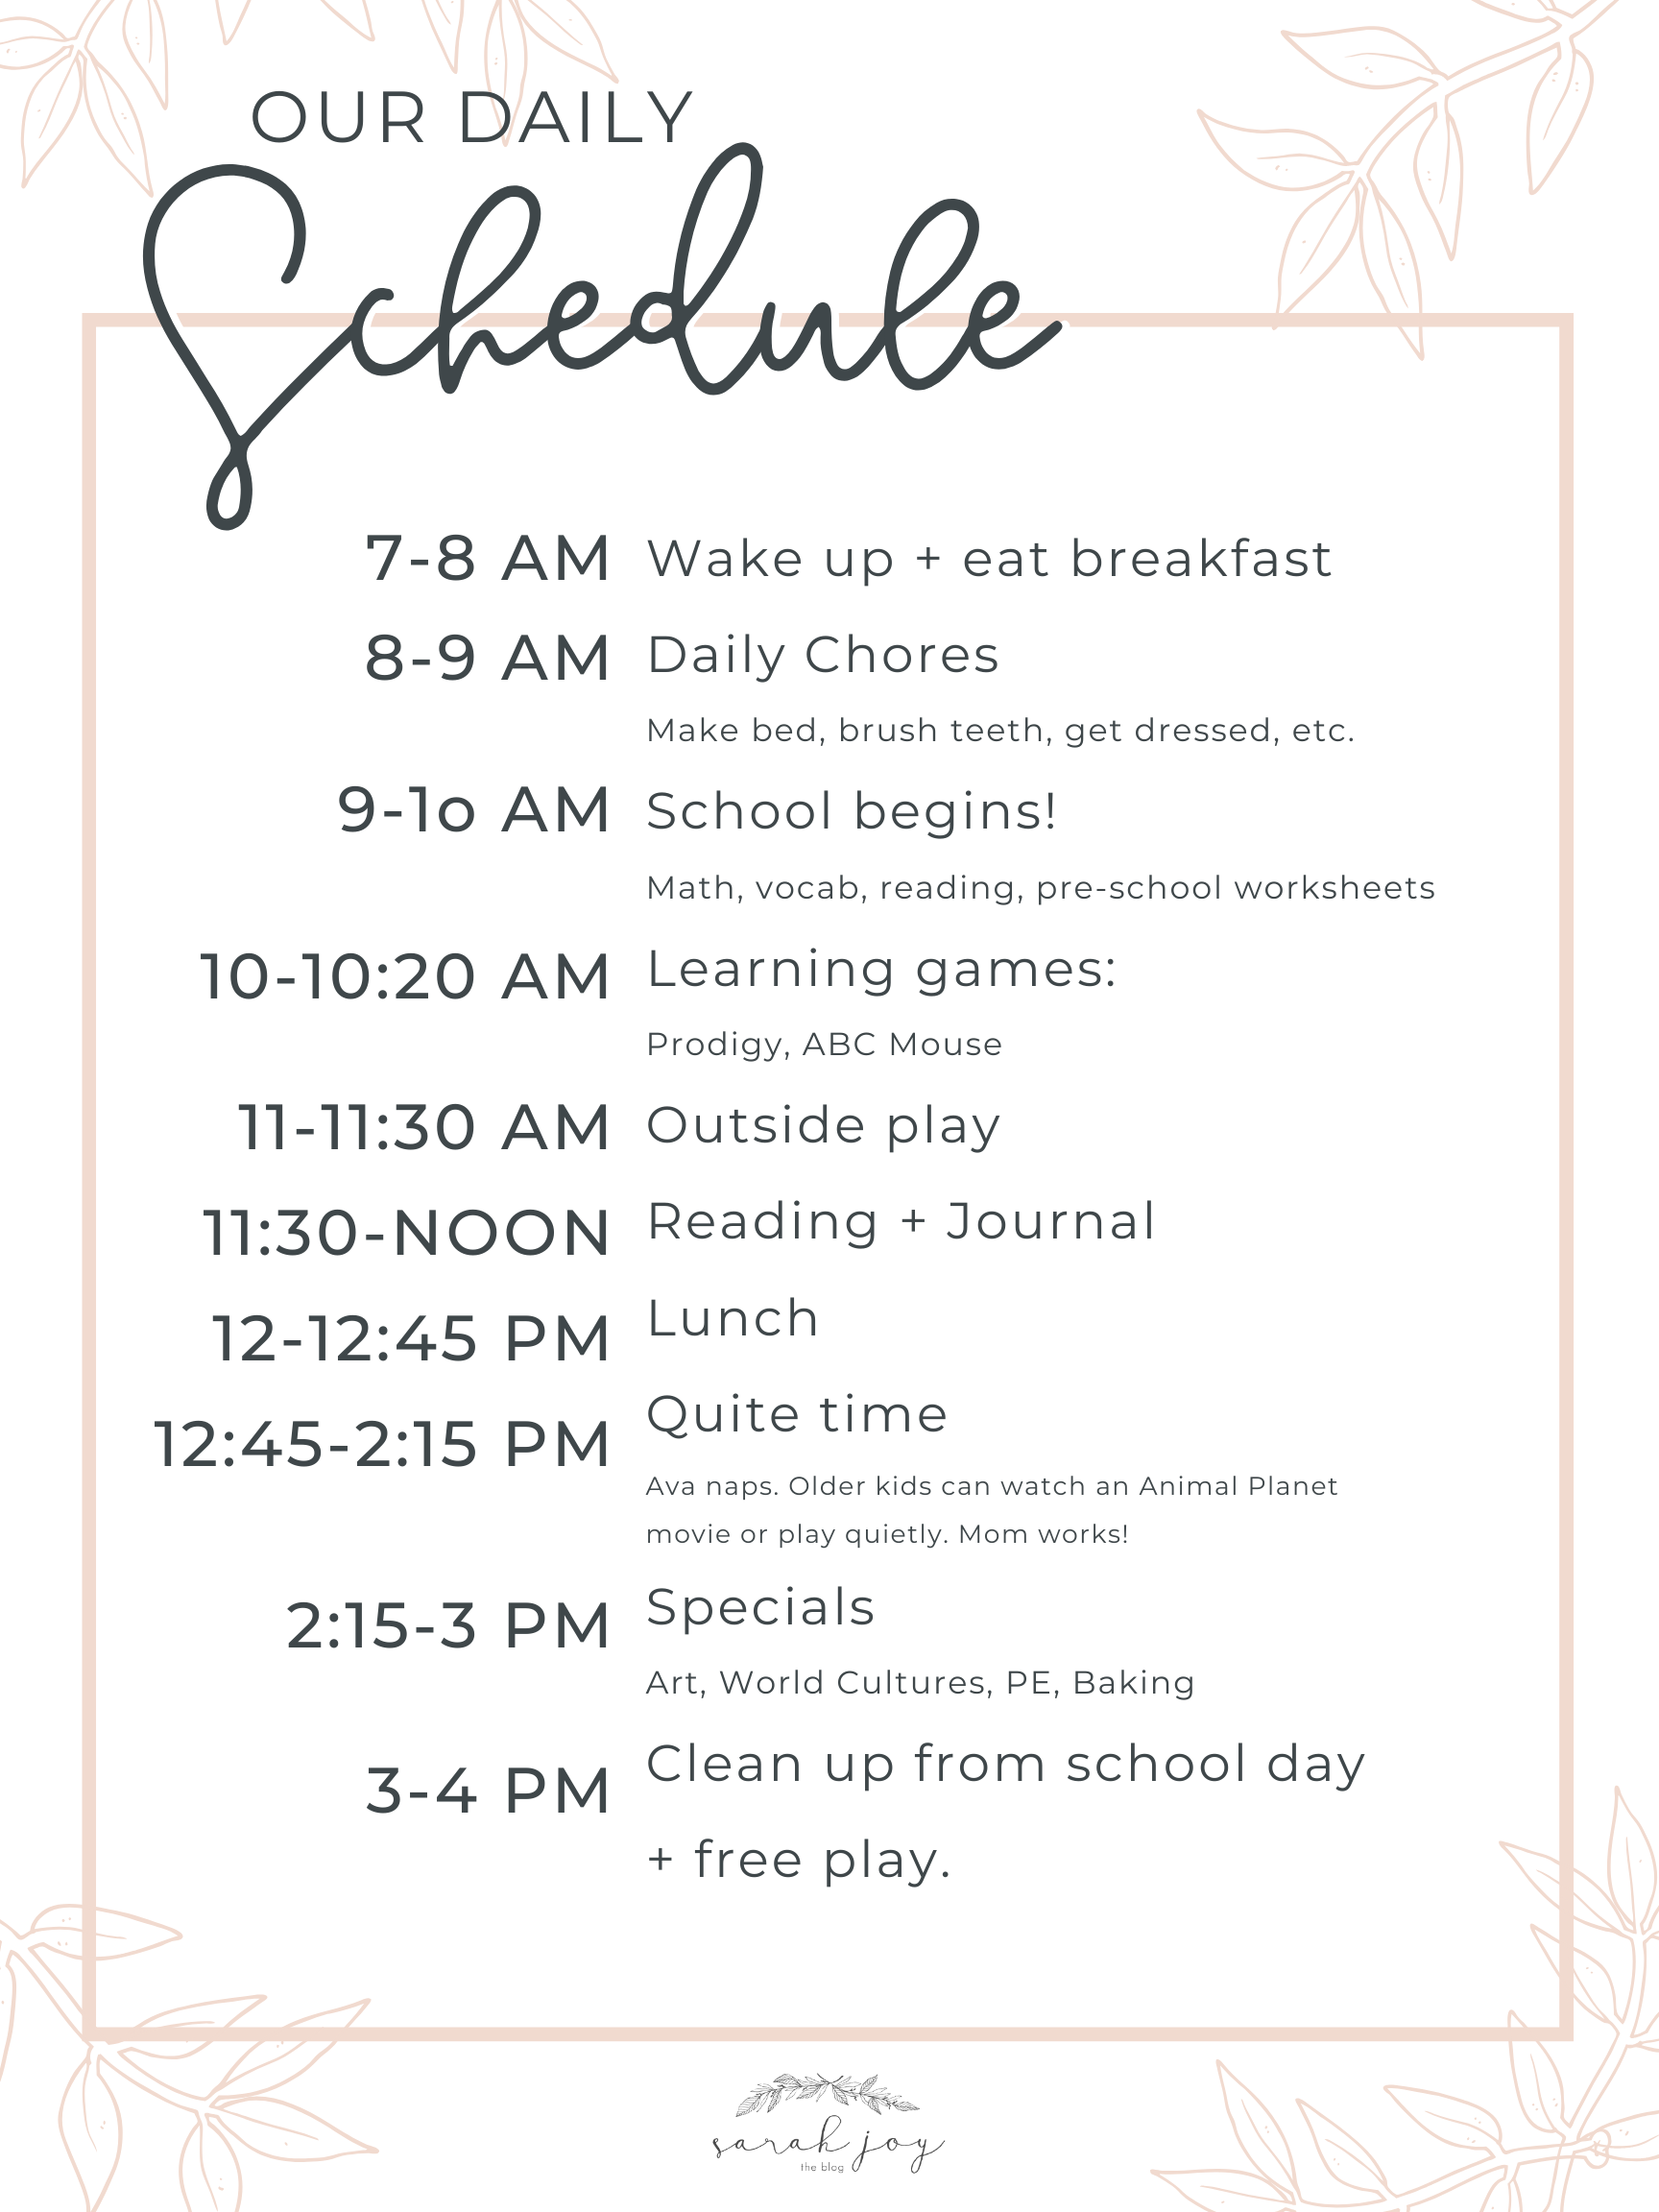 Our New Daily Schedule Activity Ideas For Kids In